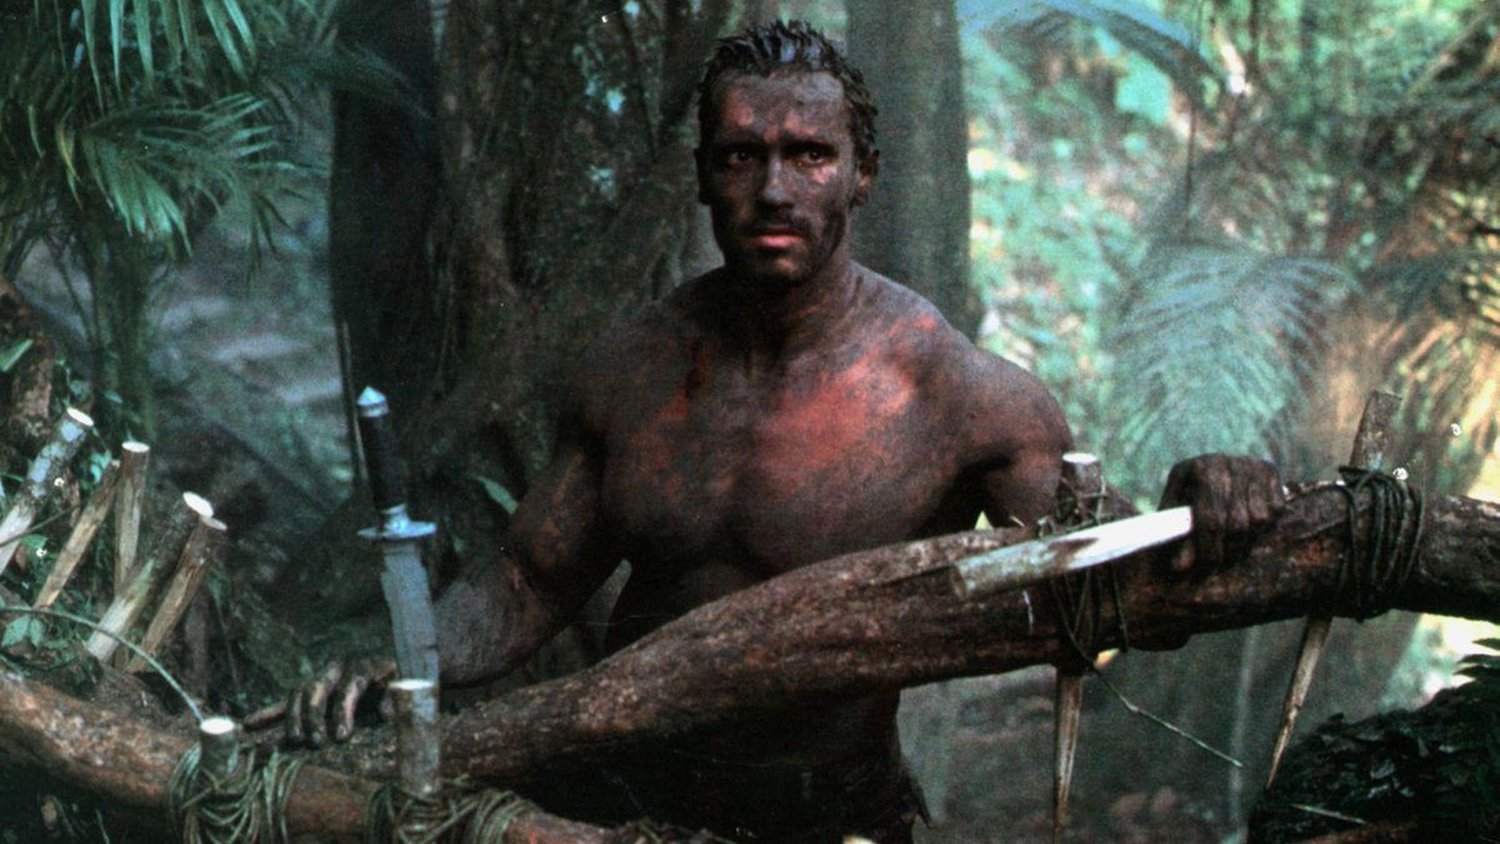 Arnold Schwarzenegger Doesn't Like the Script for THE PREDATOR and Won't Be a Part of It